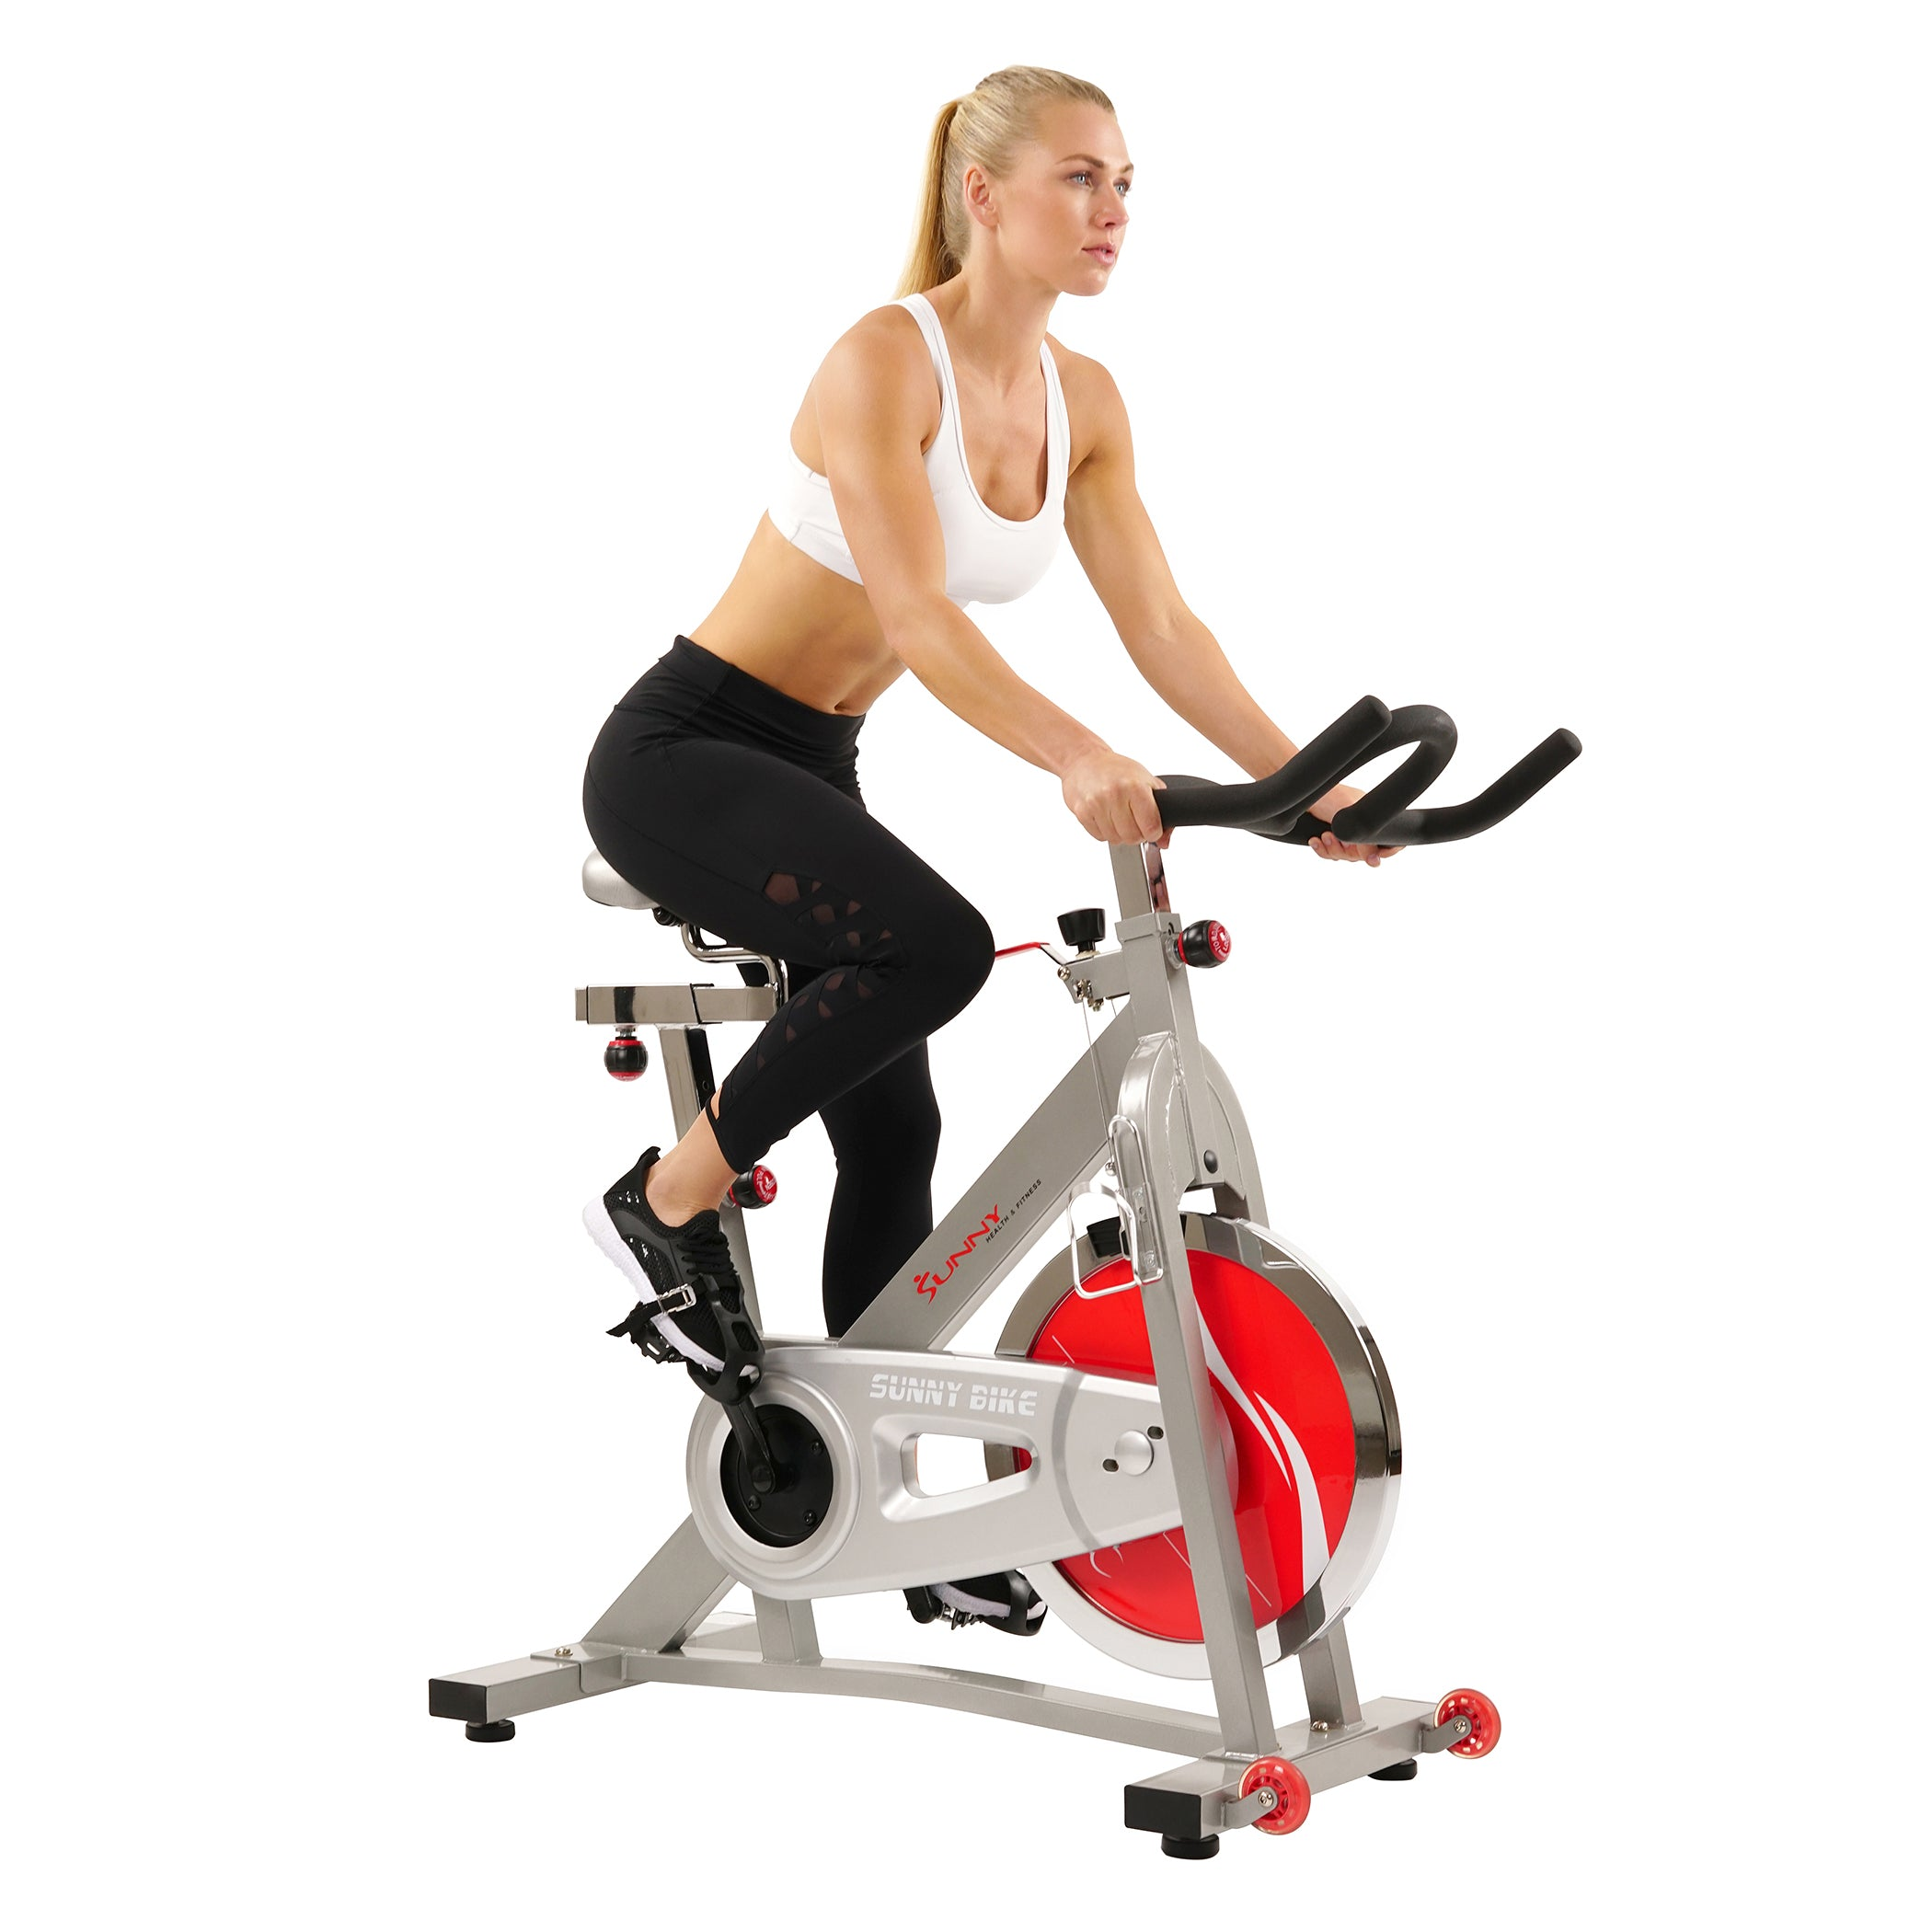 sunny-health-fitness-bikes-40lb-flywheel-belt-drive-pro-indoor-cycling-ejercicio-bike-SF-B901B-belt-drive